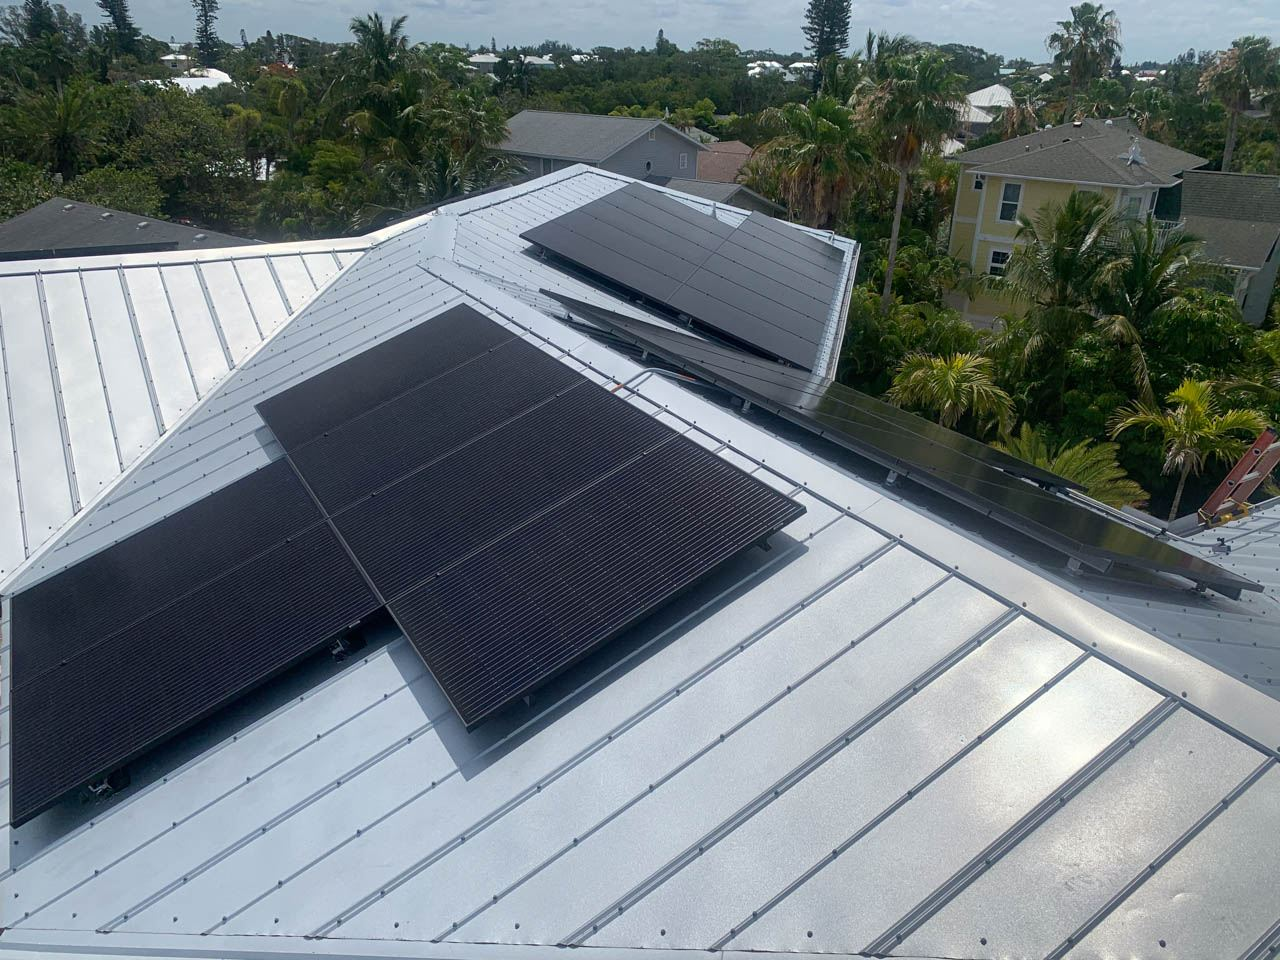 Solary array of a solar installation on a metal roof in Holmes Beach, FL